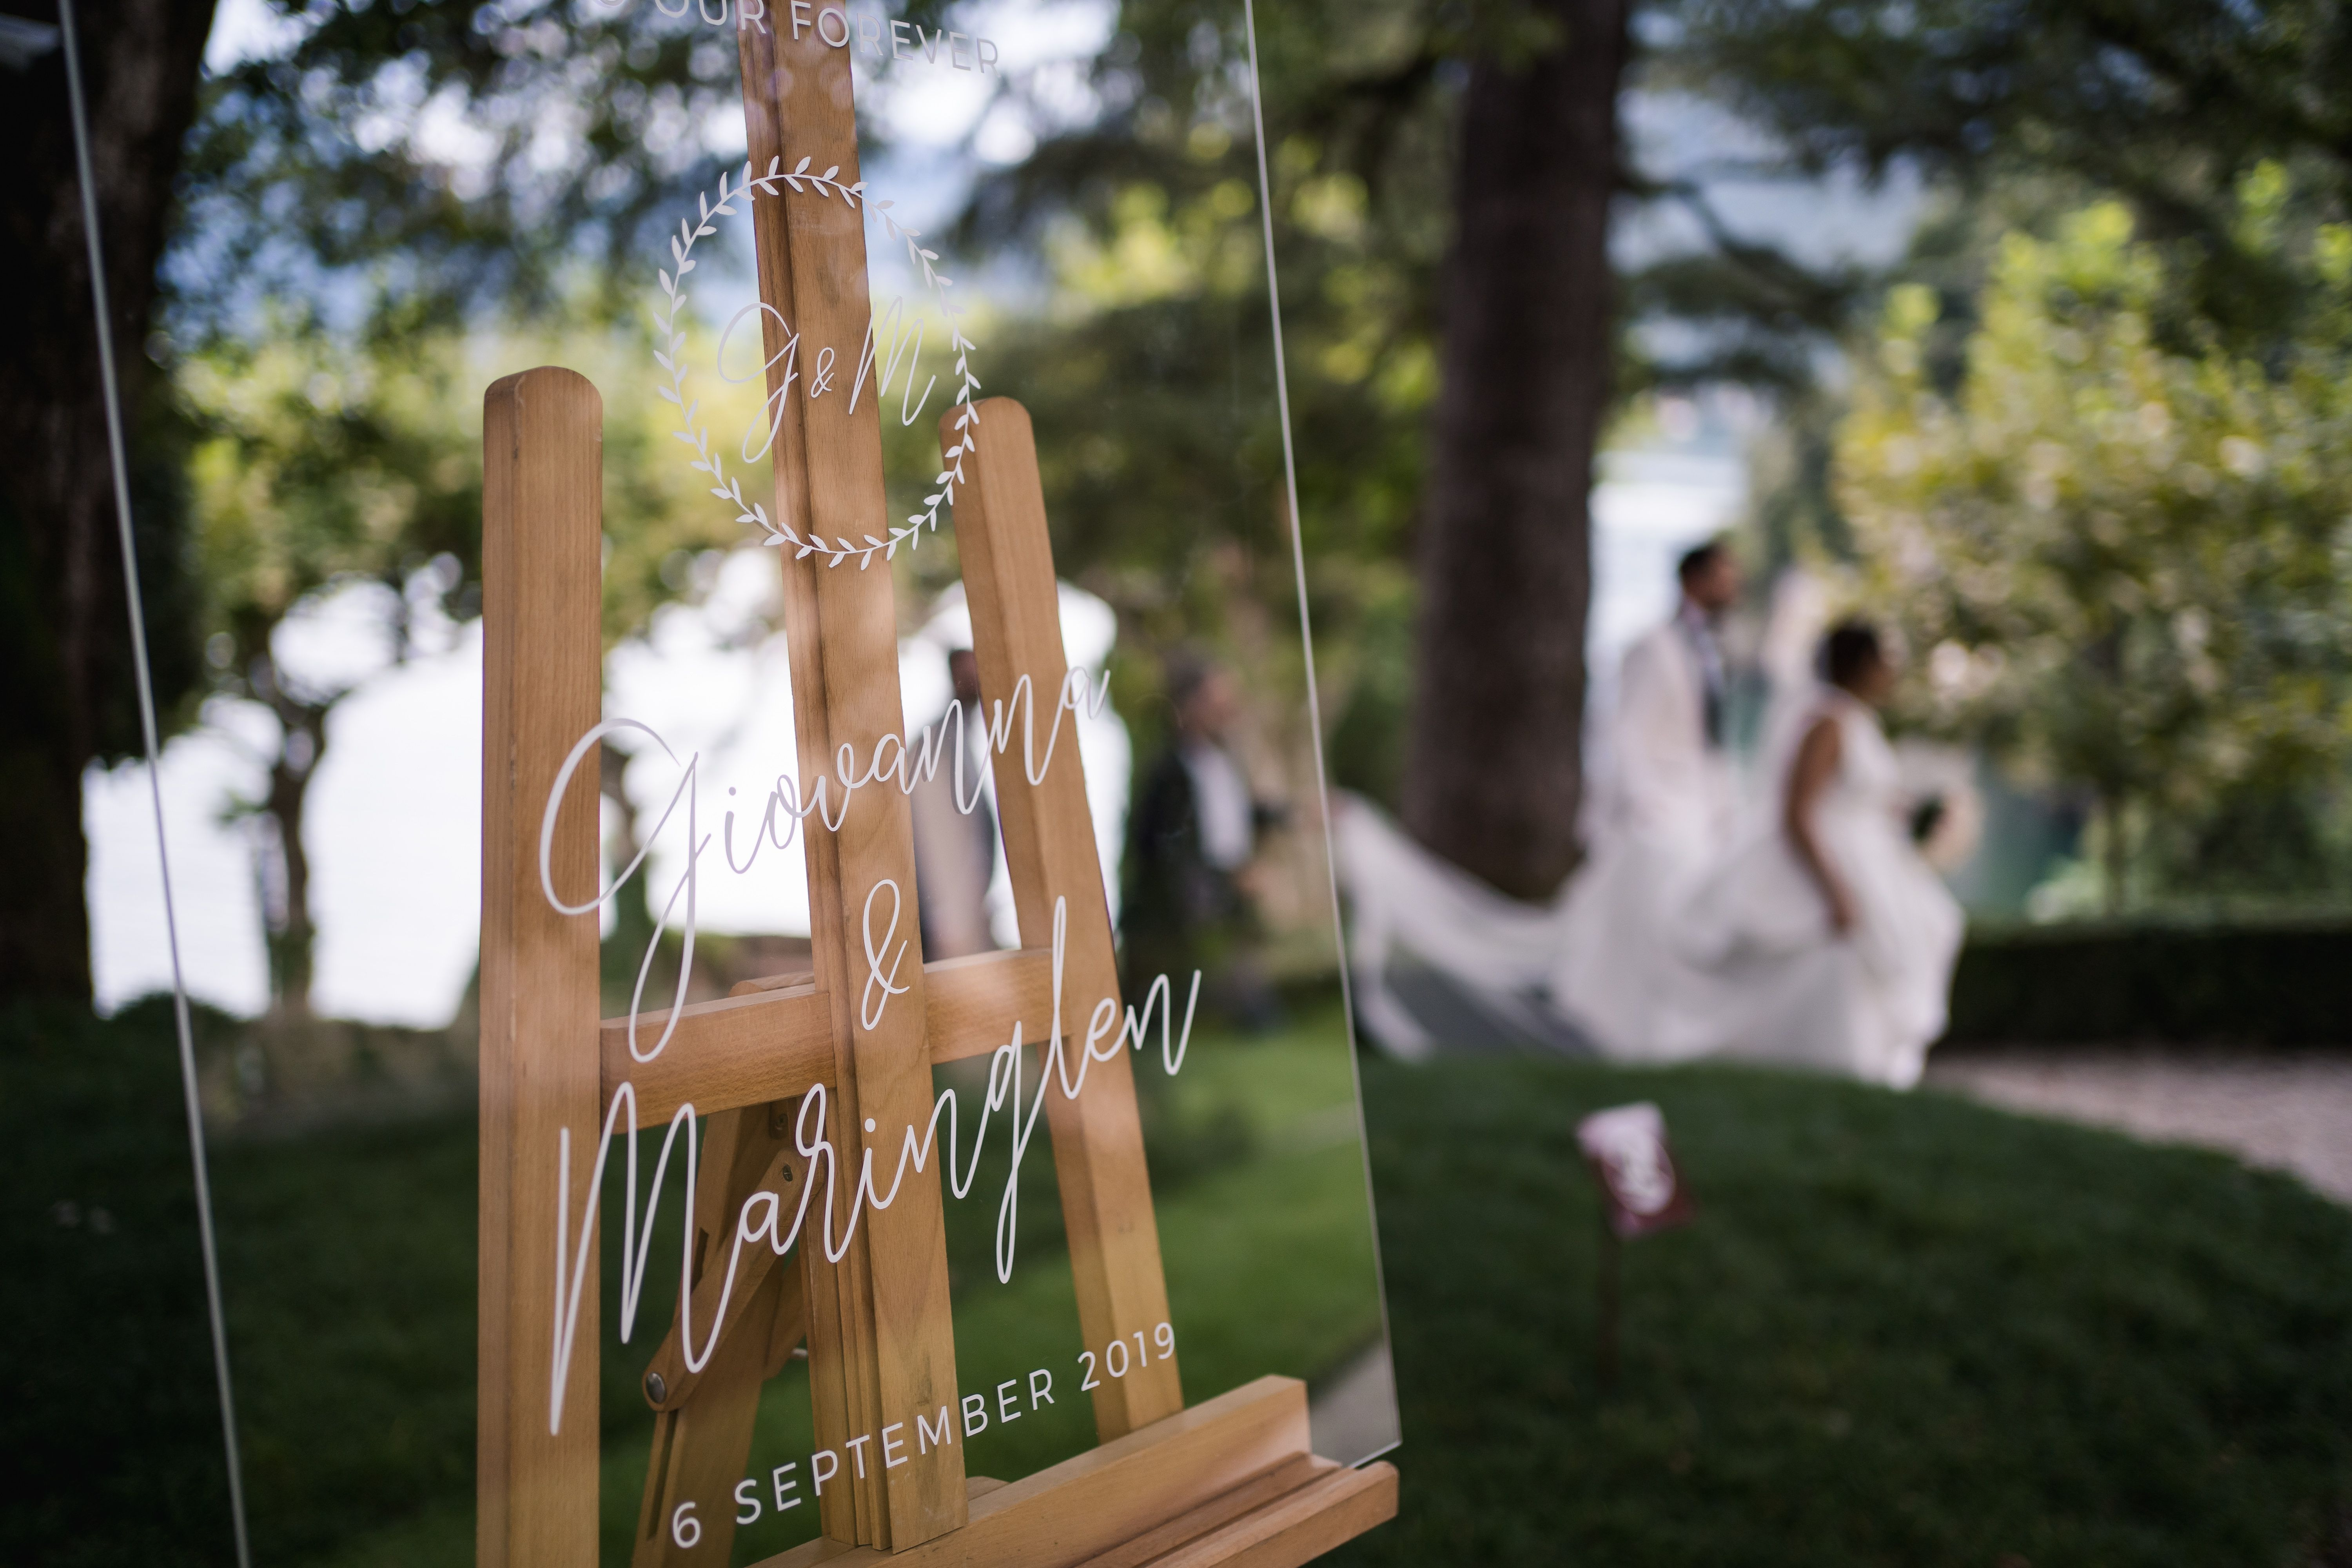 Welcome sign to the wedding personalized with name and wedding date of acrylic glass, English caption